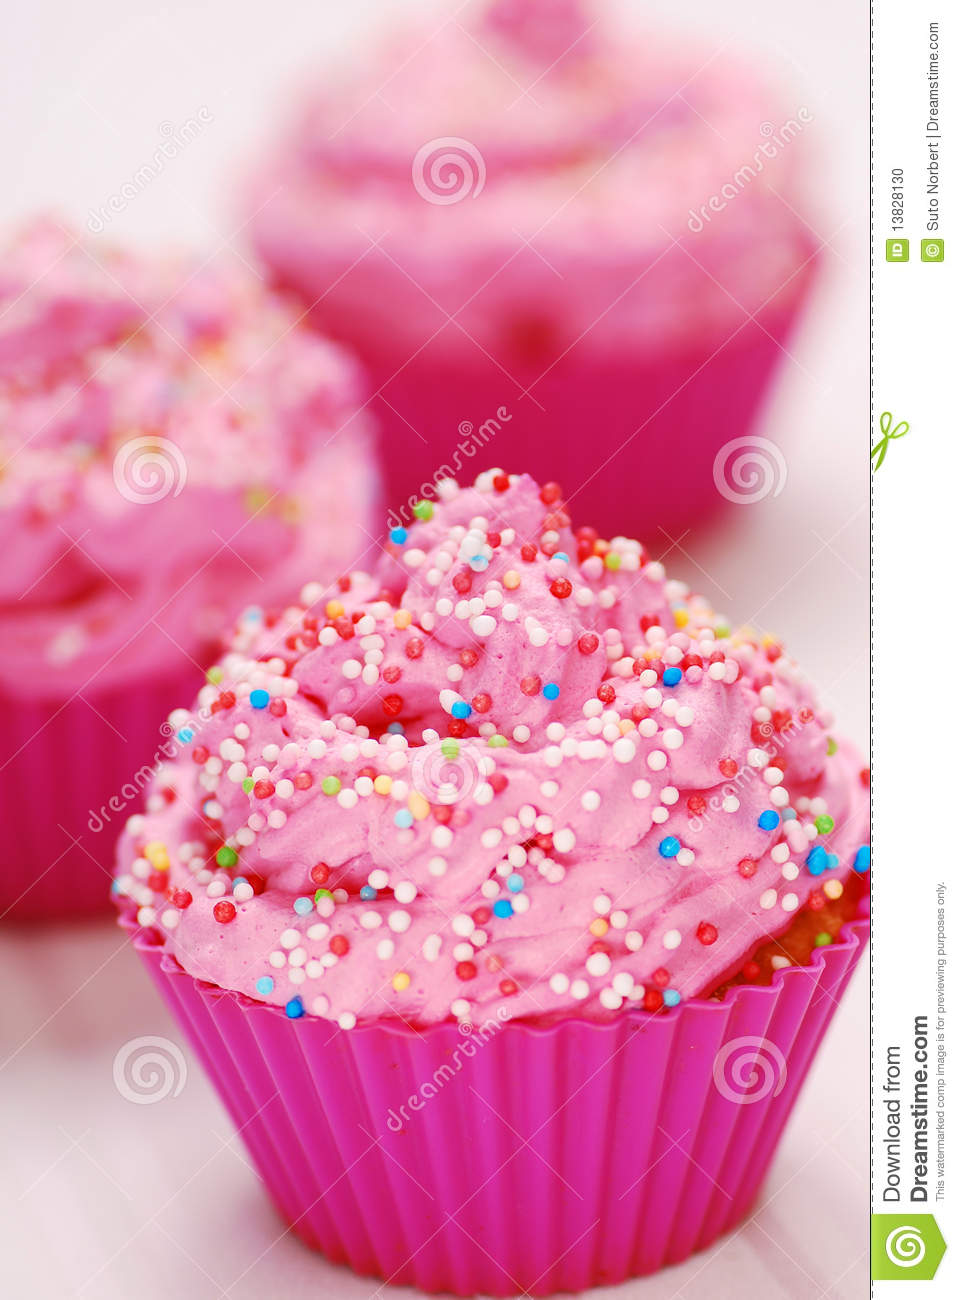 Pink cupcakes stock photo. Image of pink, illustration ...